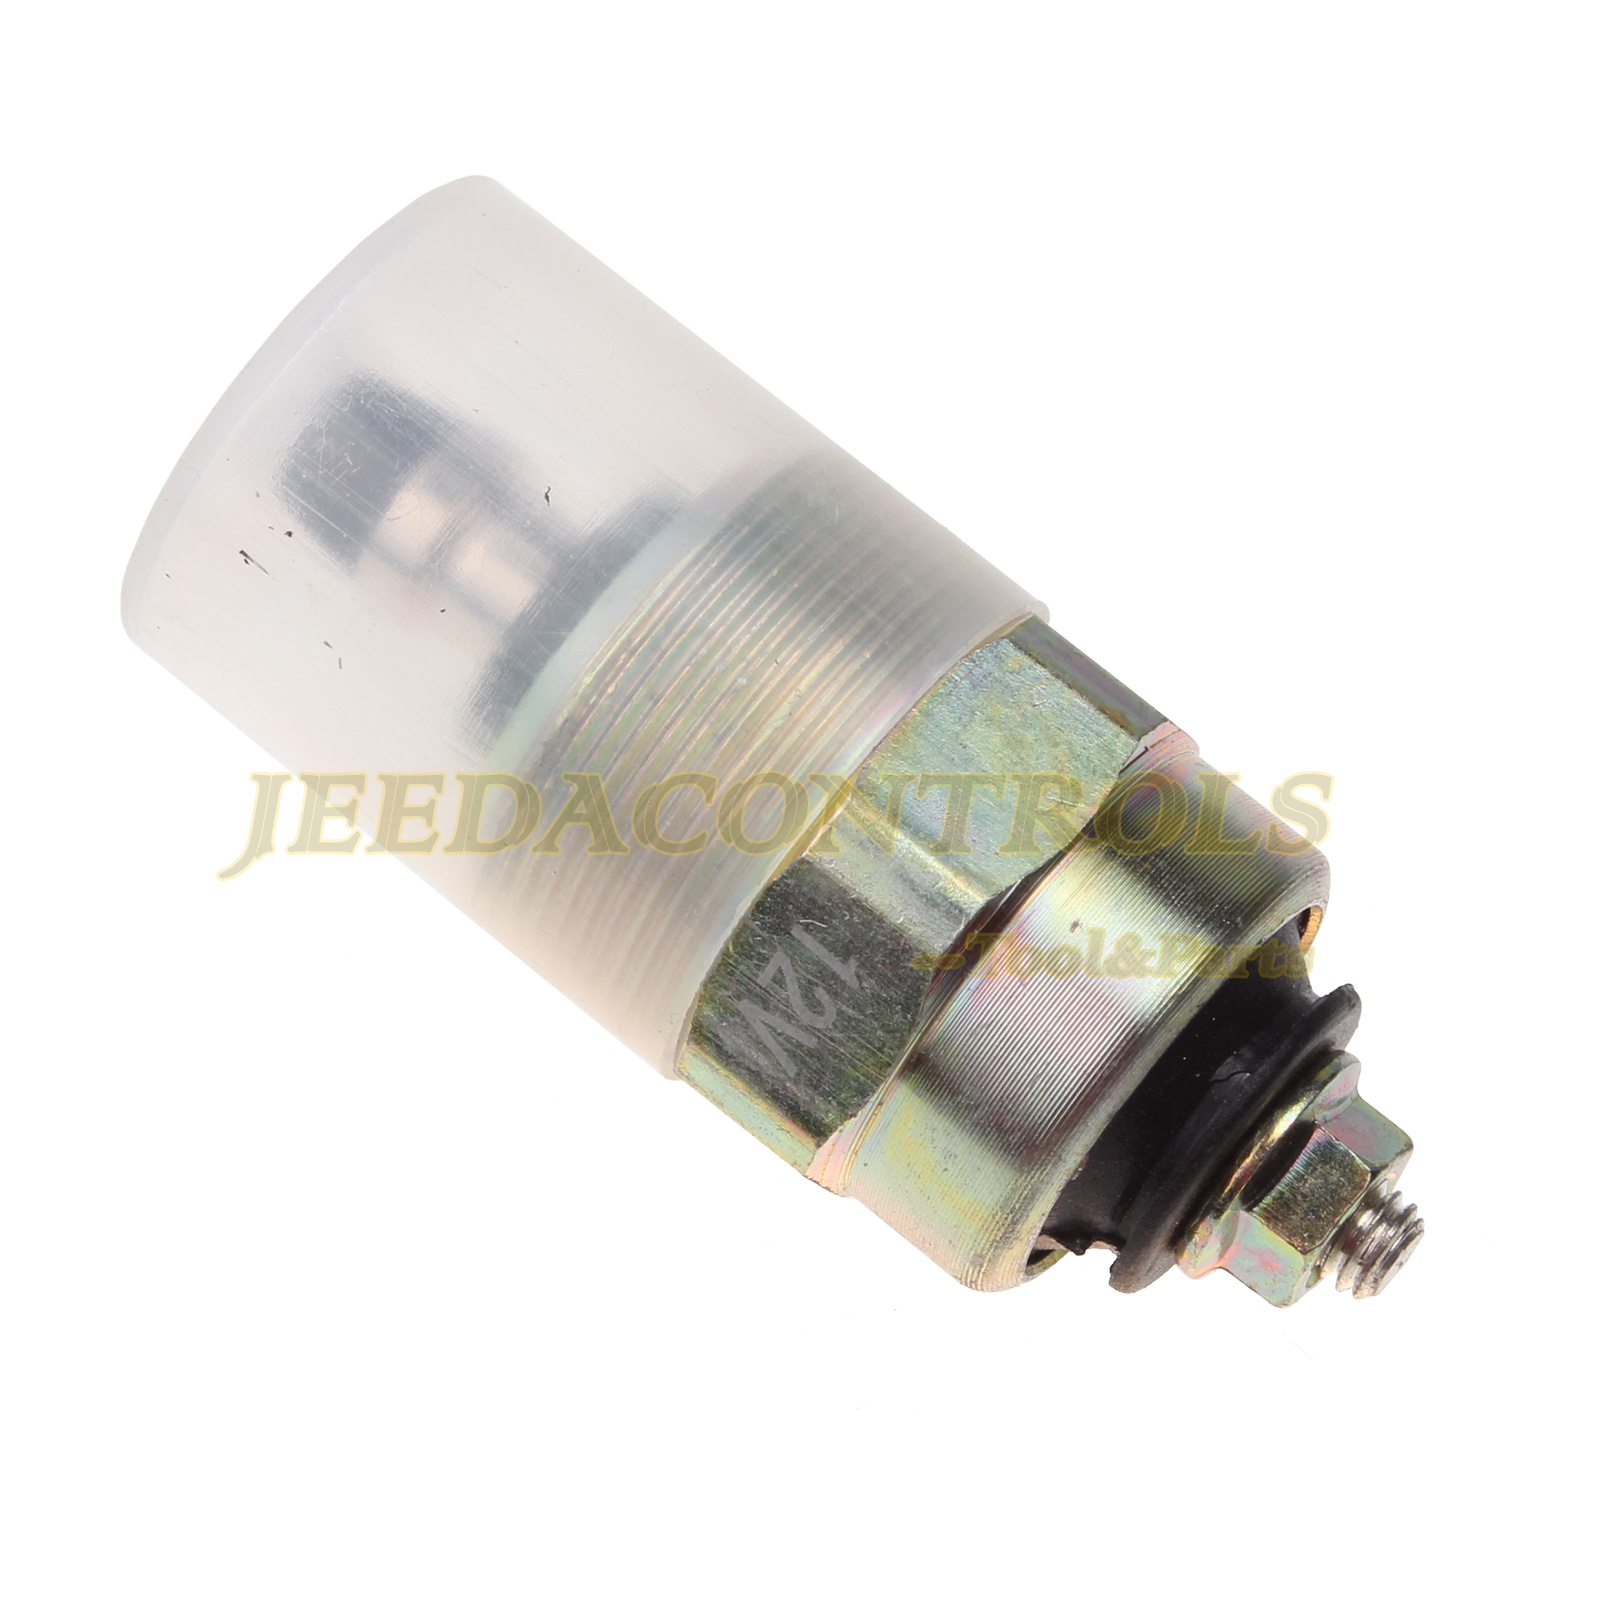 Sz Machparts Fuel Cut Off Stop Solenoid 8190393 Compatible with Bosch M24 x 1mm M5 Case Haytools WDX1701 Parking device Injection System 12V